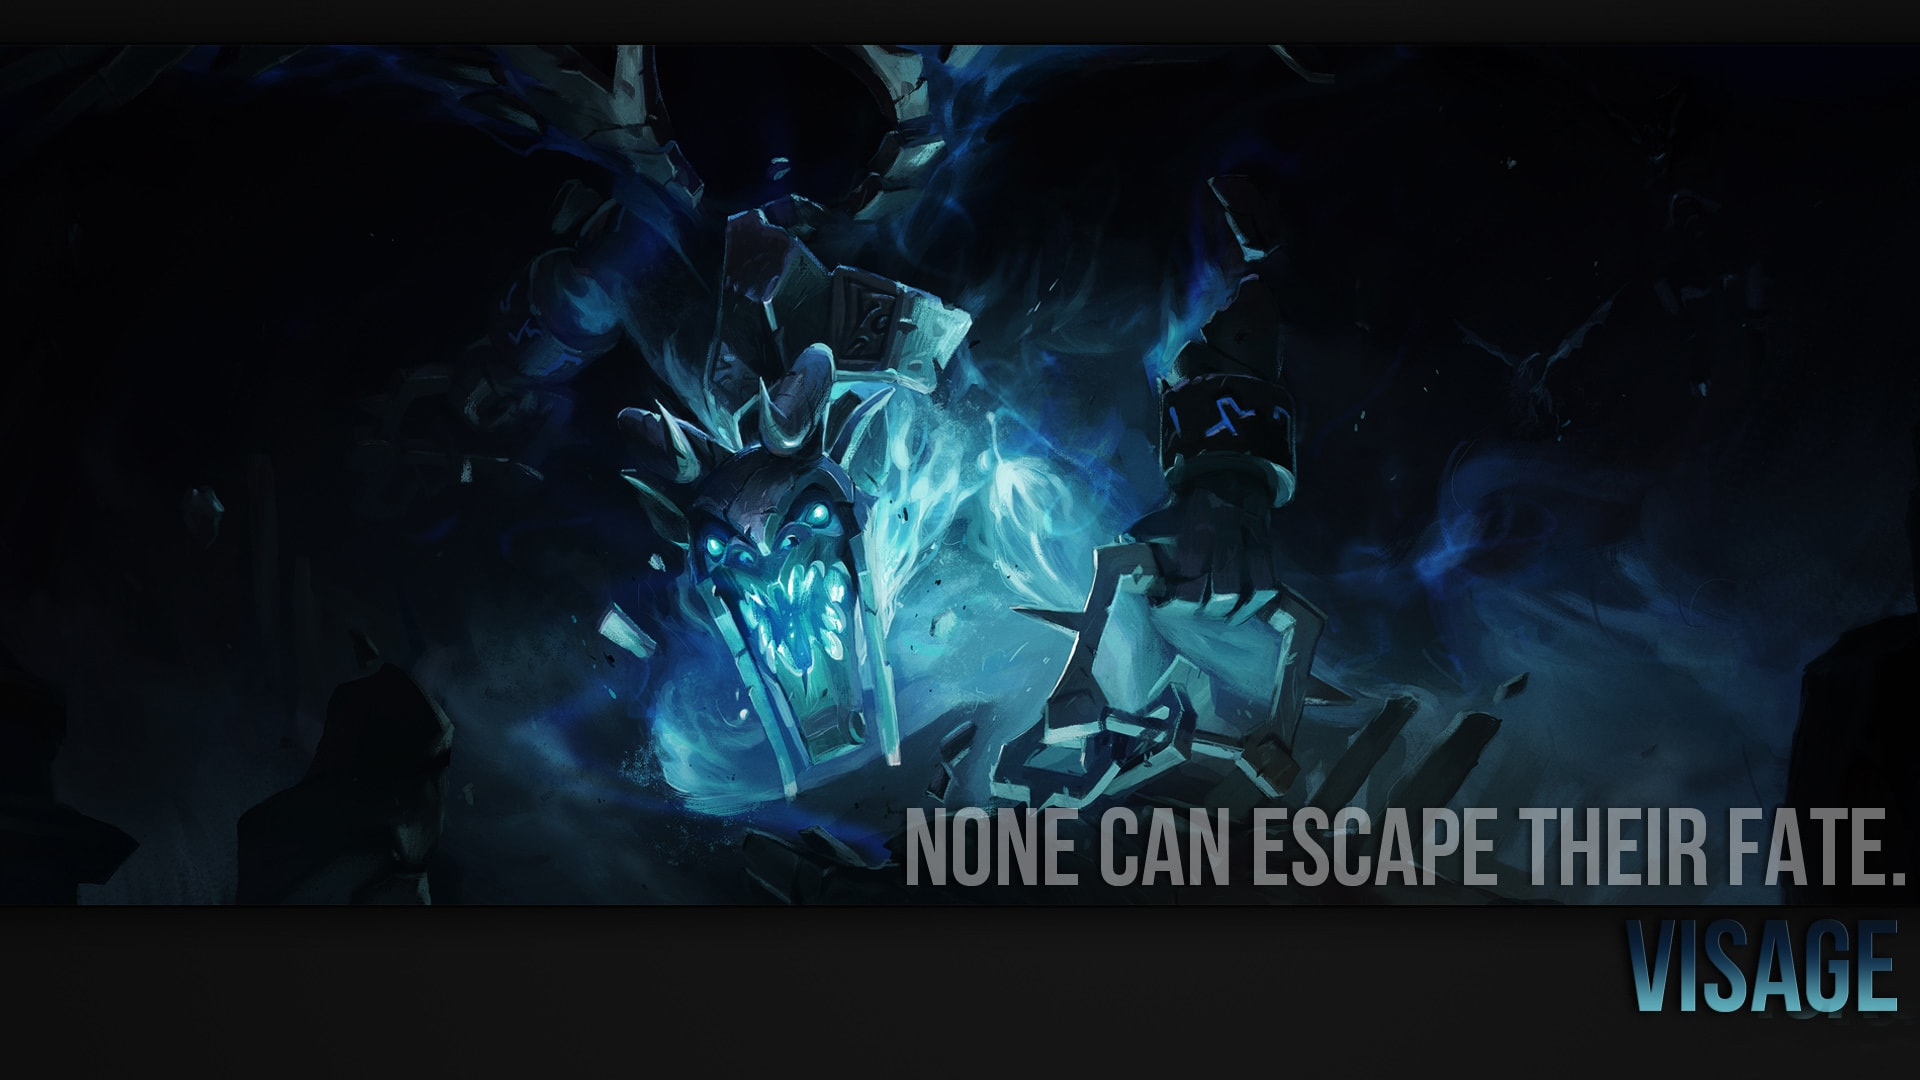 Dota 2 : Visage backgrounds